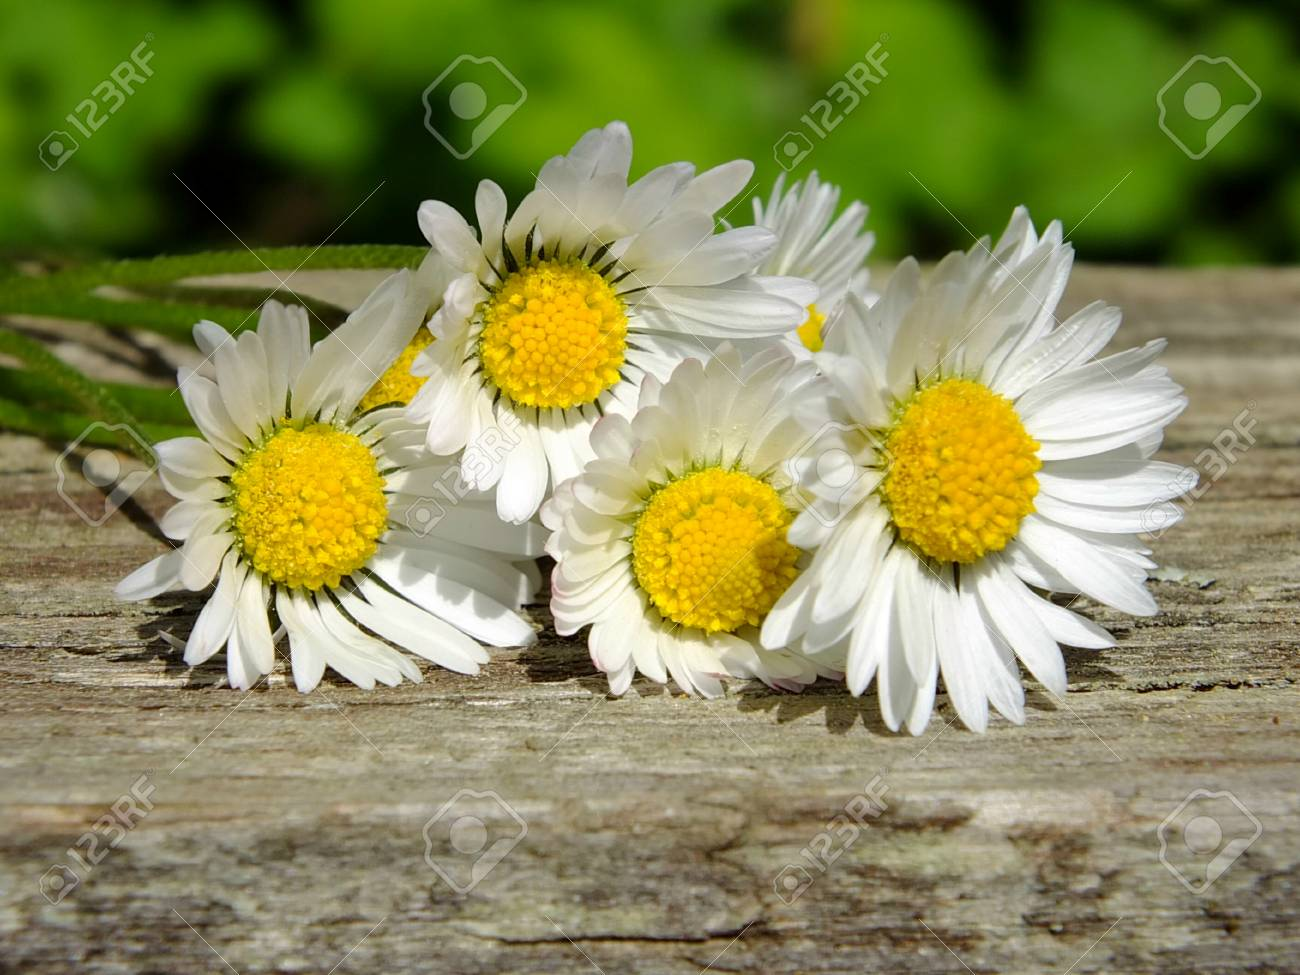 Daisies on wooden background with copy space Standard-Bild - 35180407